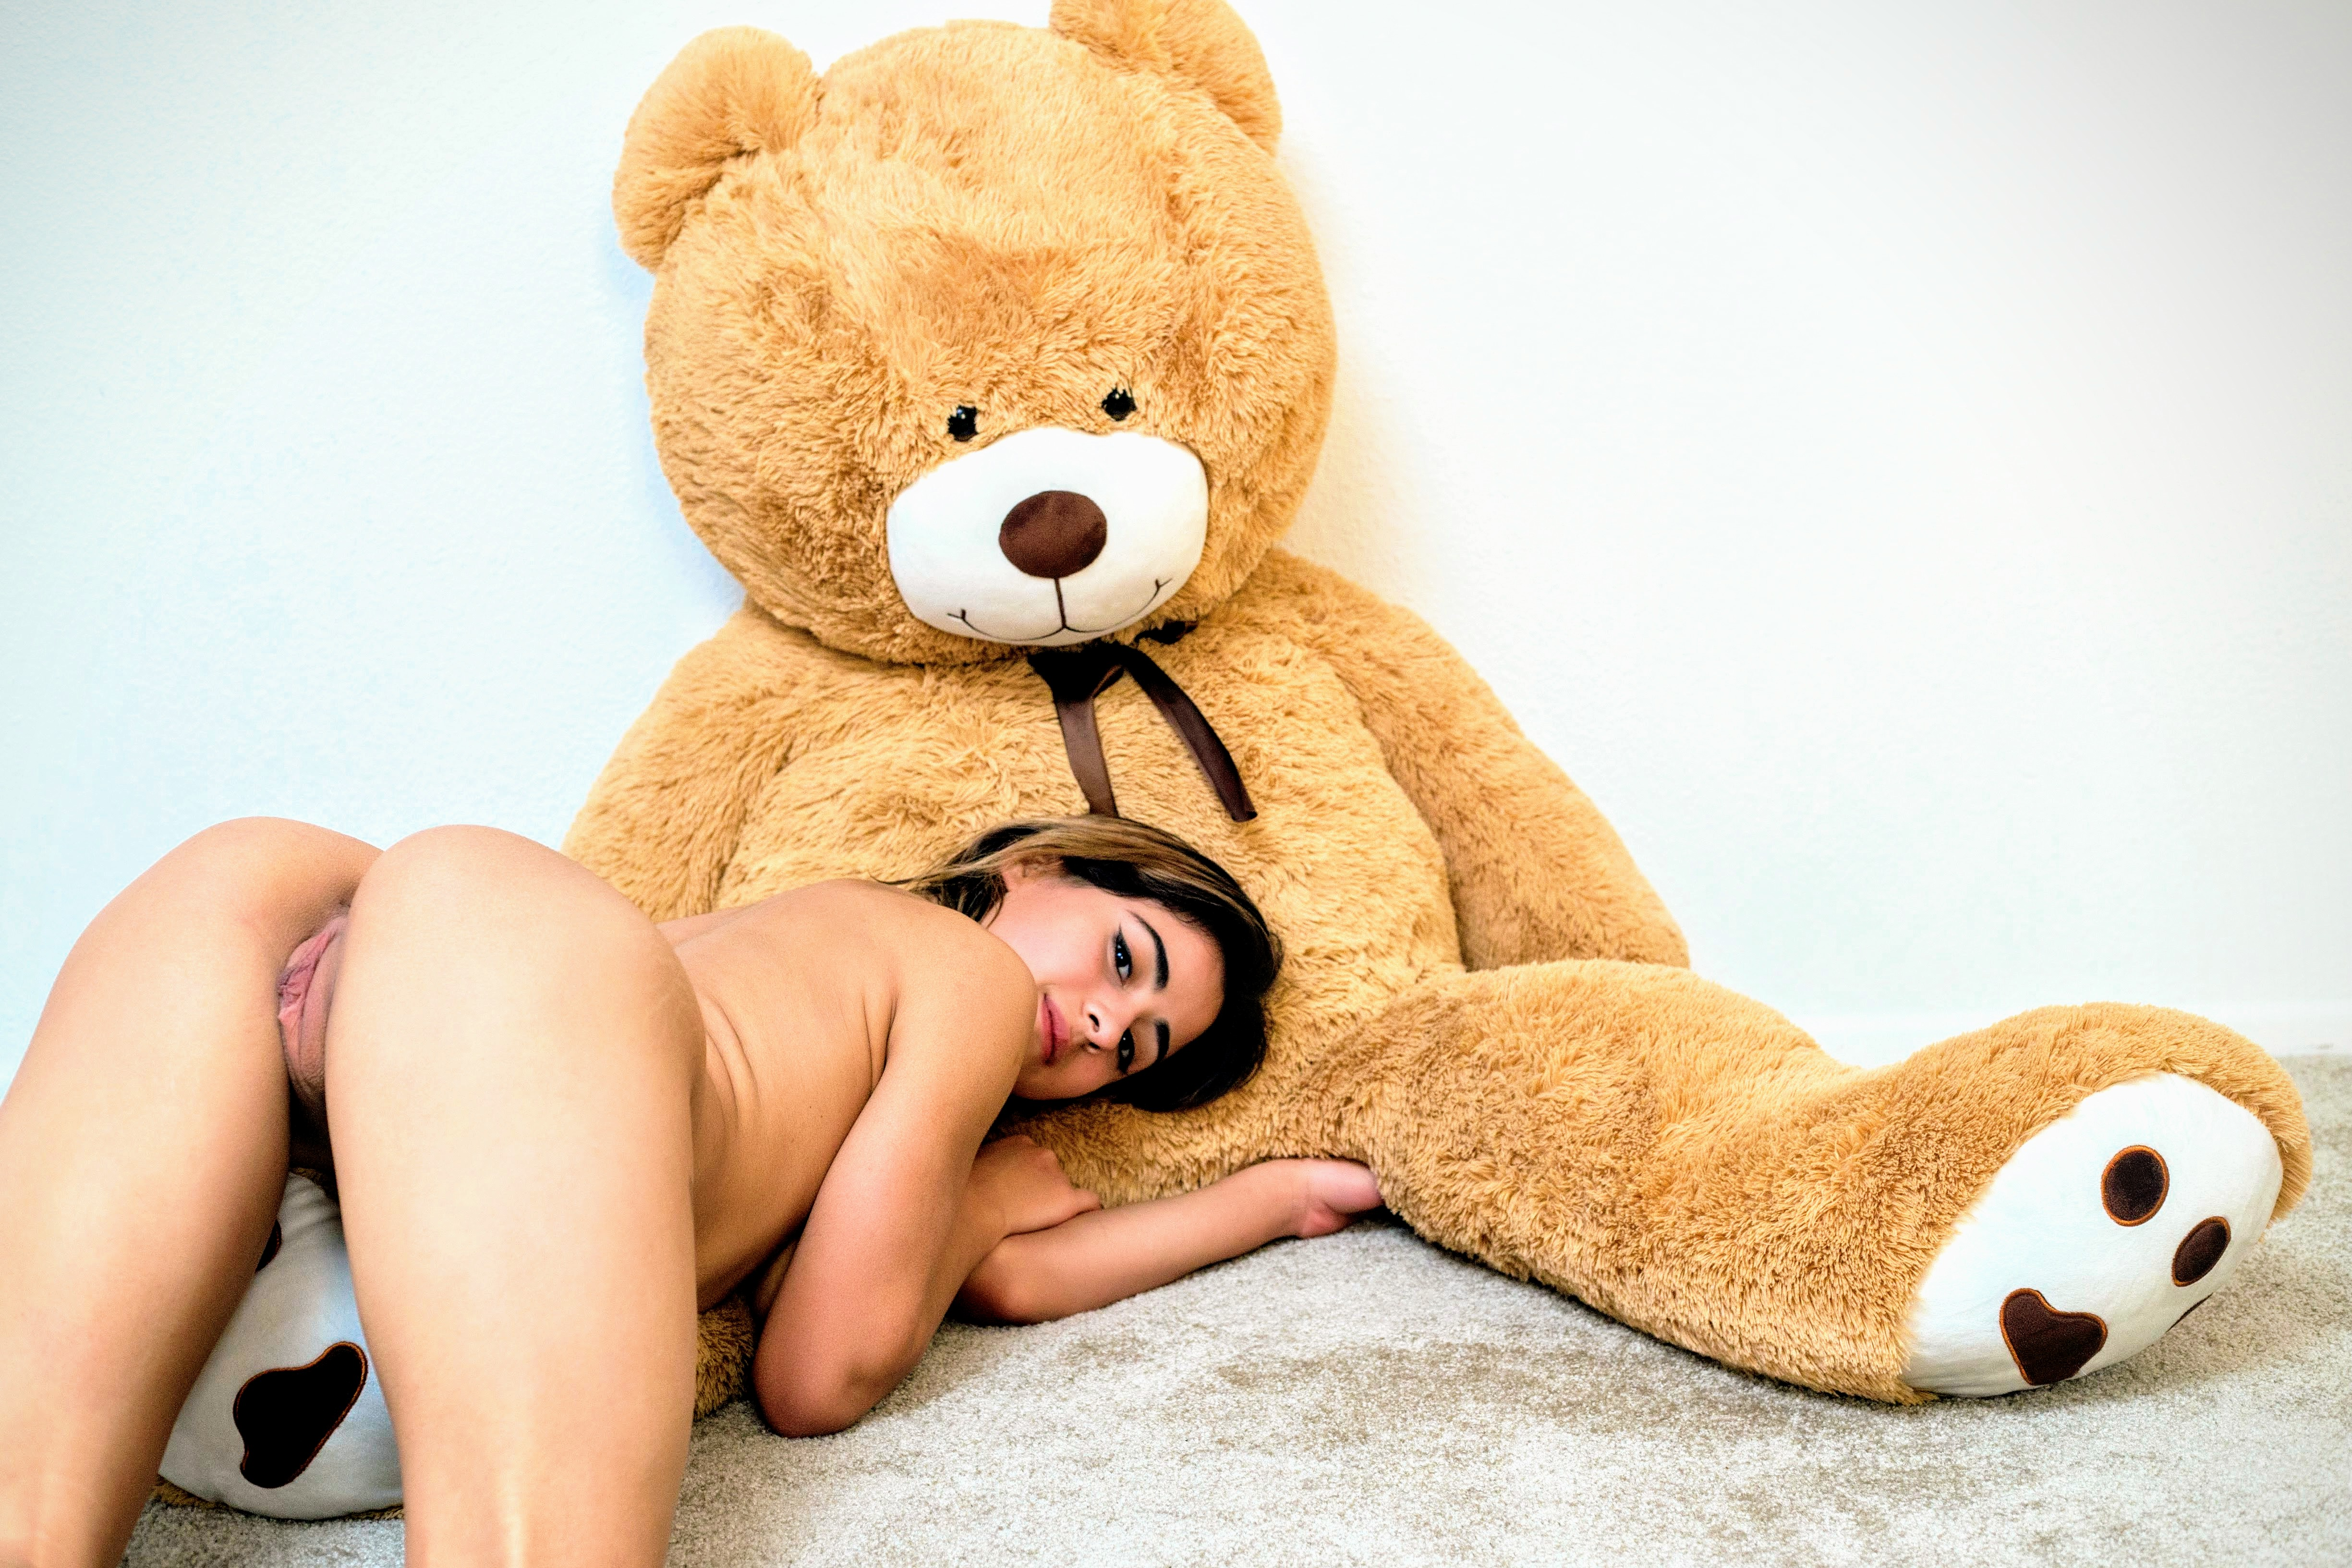 Will and a girl bear nude you have answered